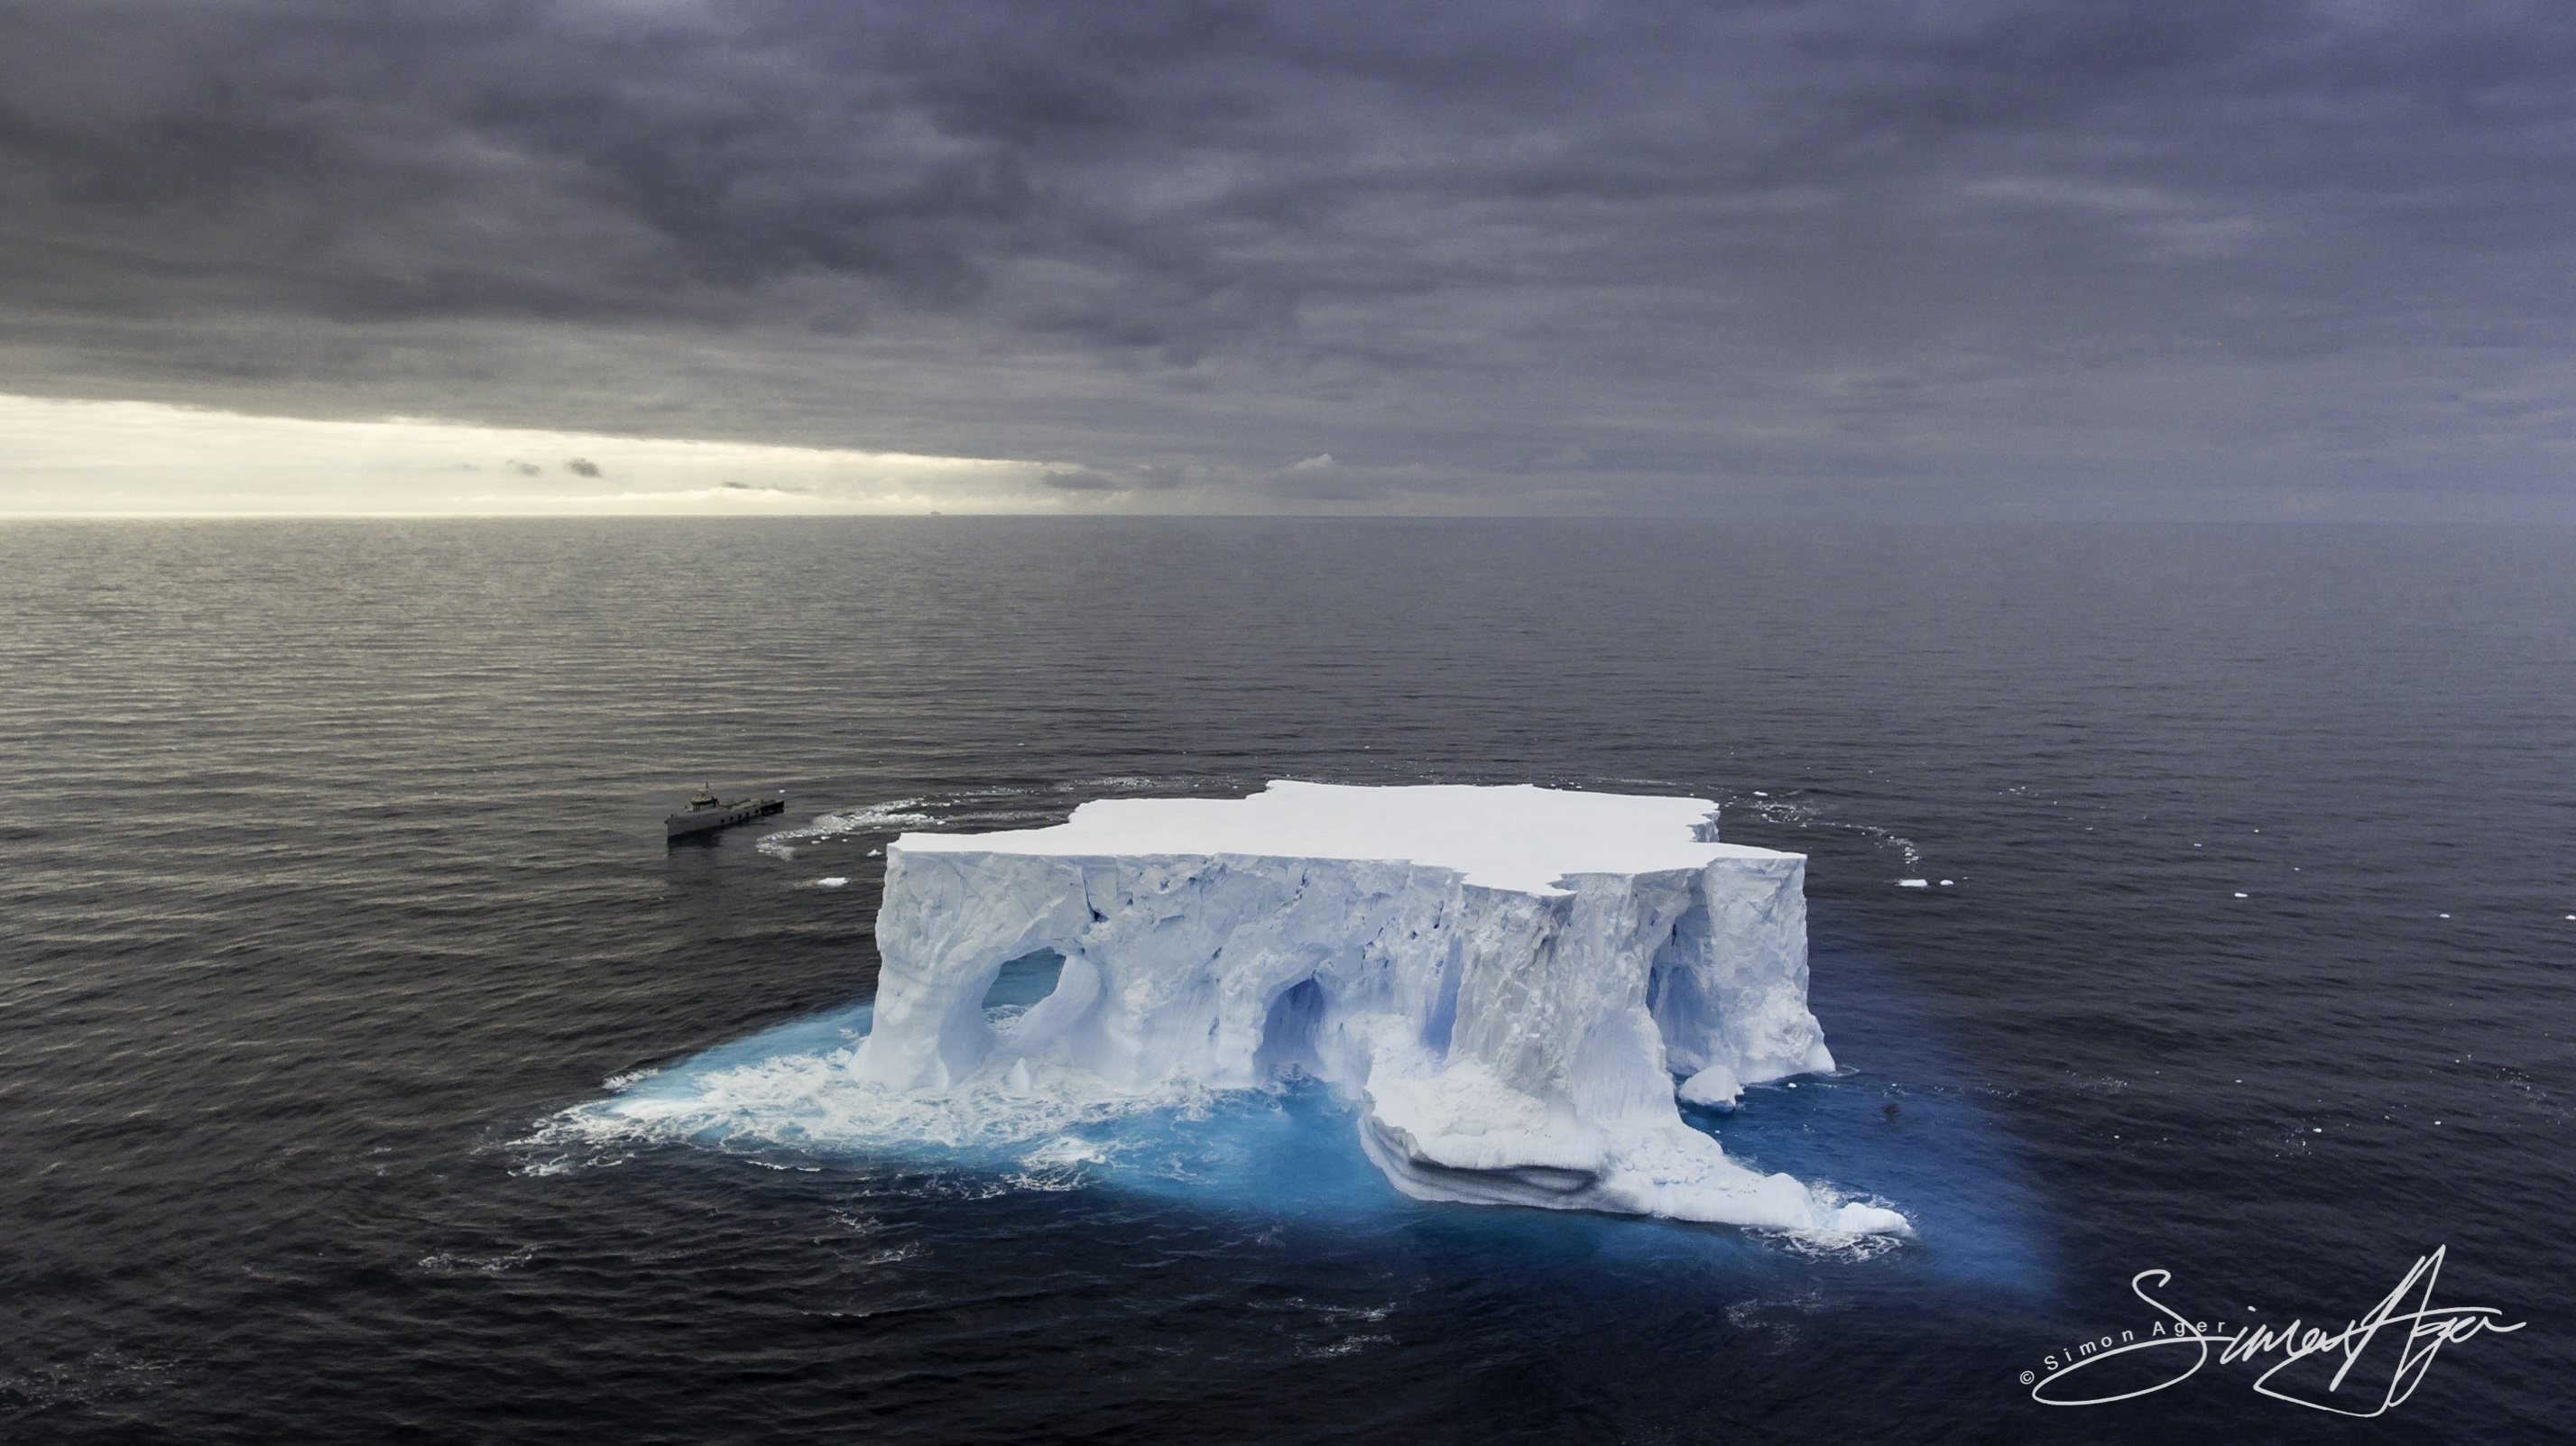 161216-SA-OW-in-front-of-iceberg-drone-shot-002-0004